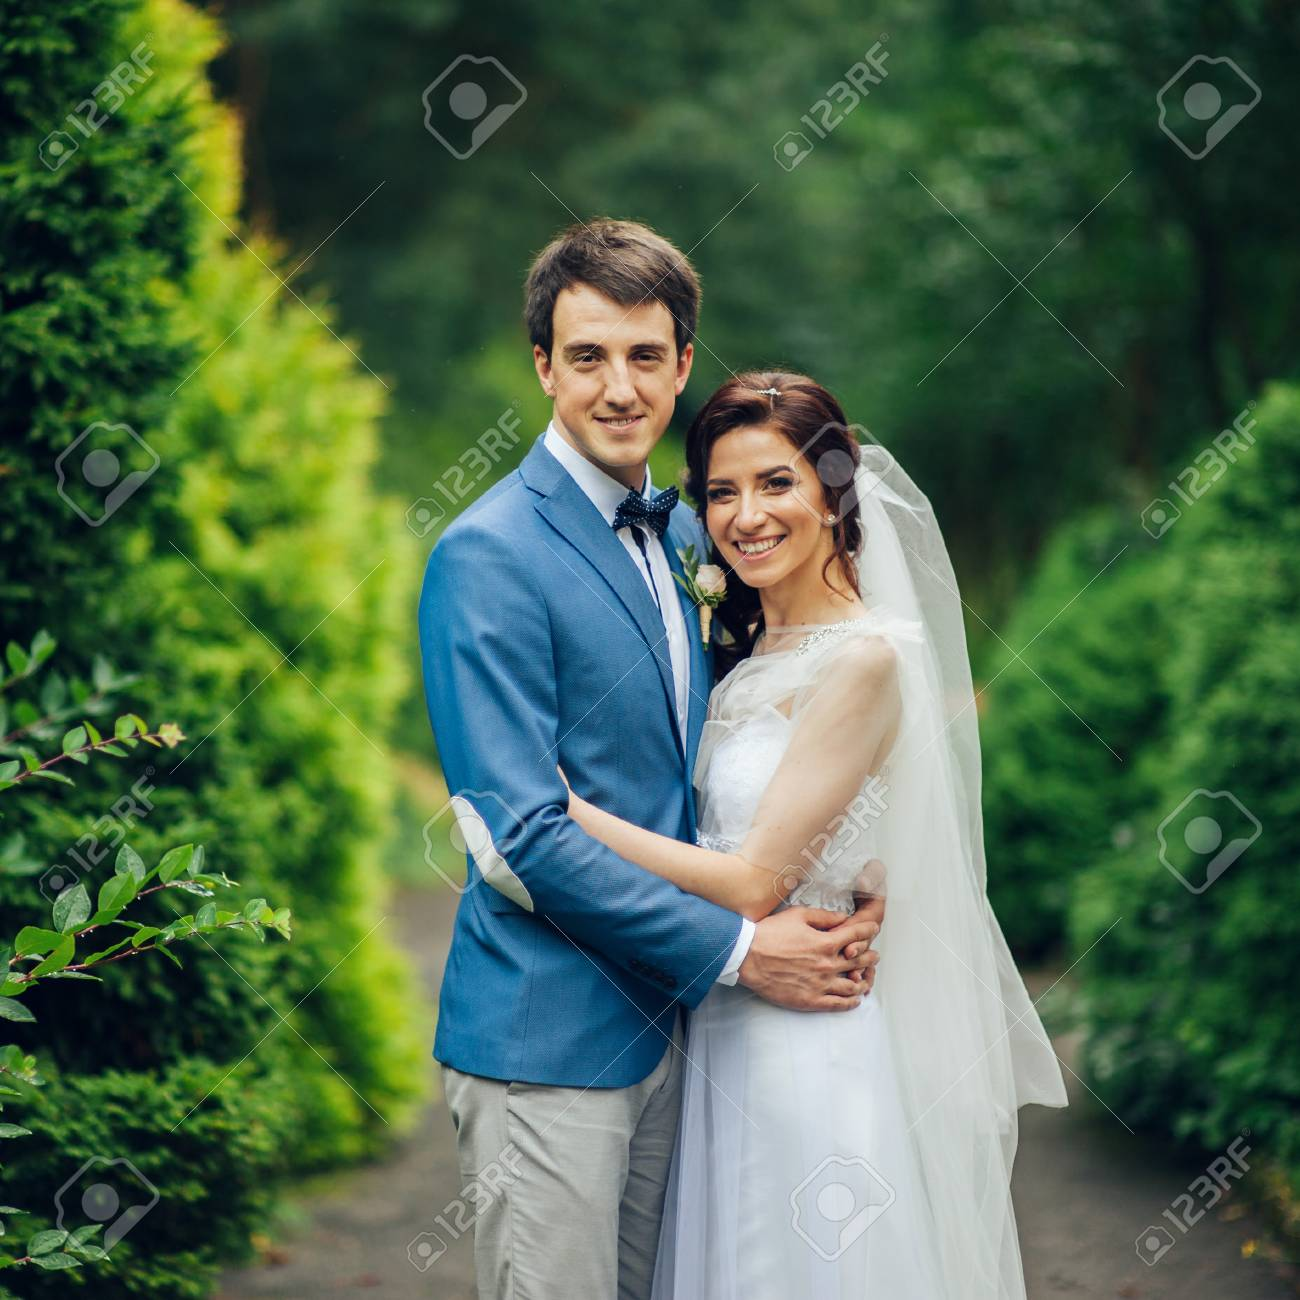 Pretty Wedding Couple Poses In A Green Spring Garden Stock Photo Picture And Royalty Free Image Image 93283833